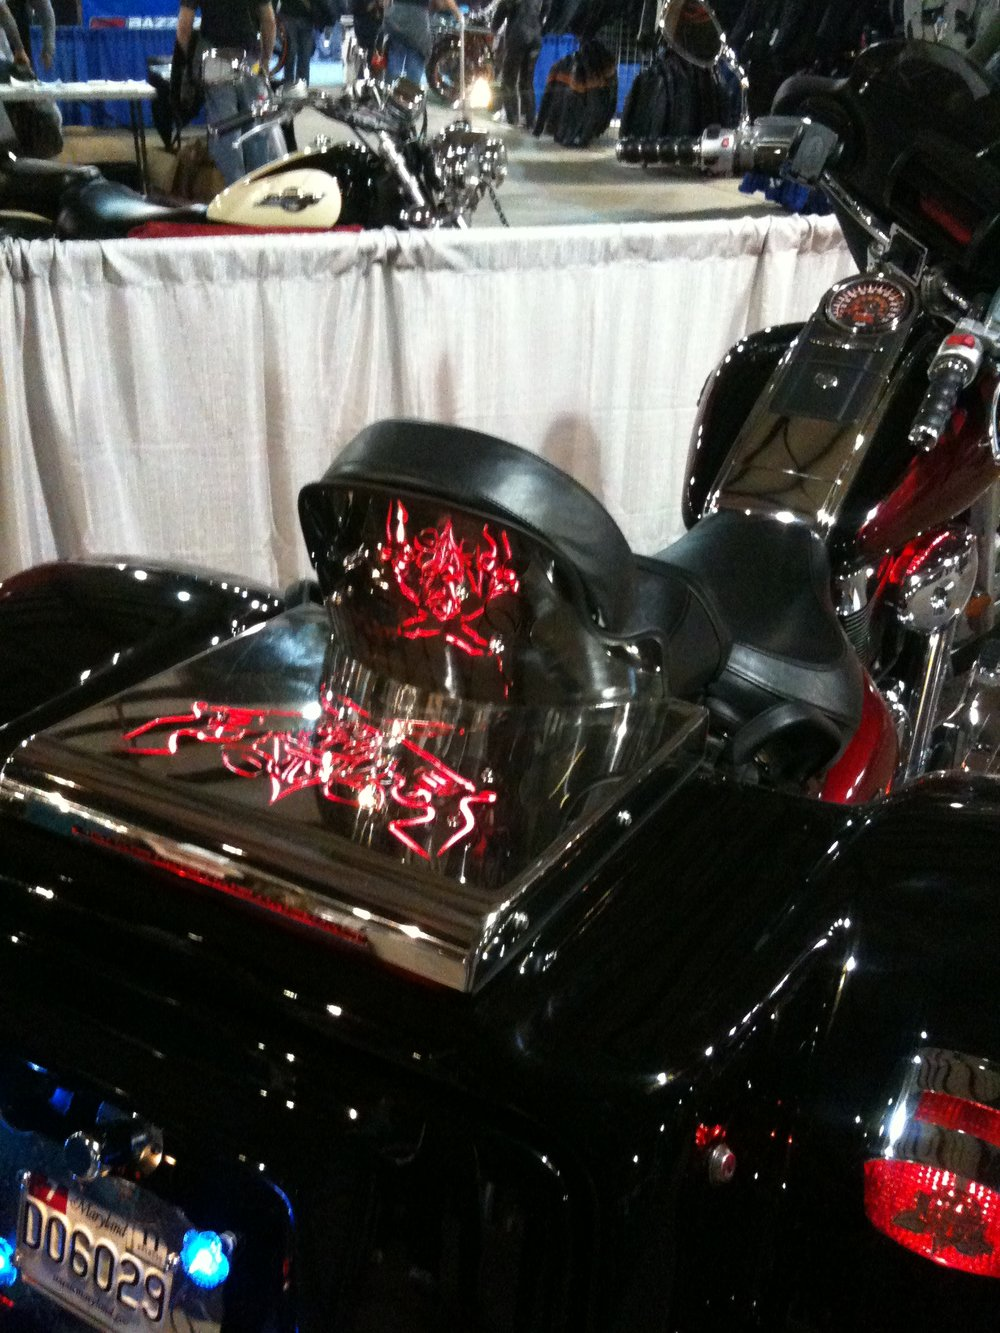 SS Artwork on Trike (3rd Place Mid-Atlantic Bike Show)